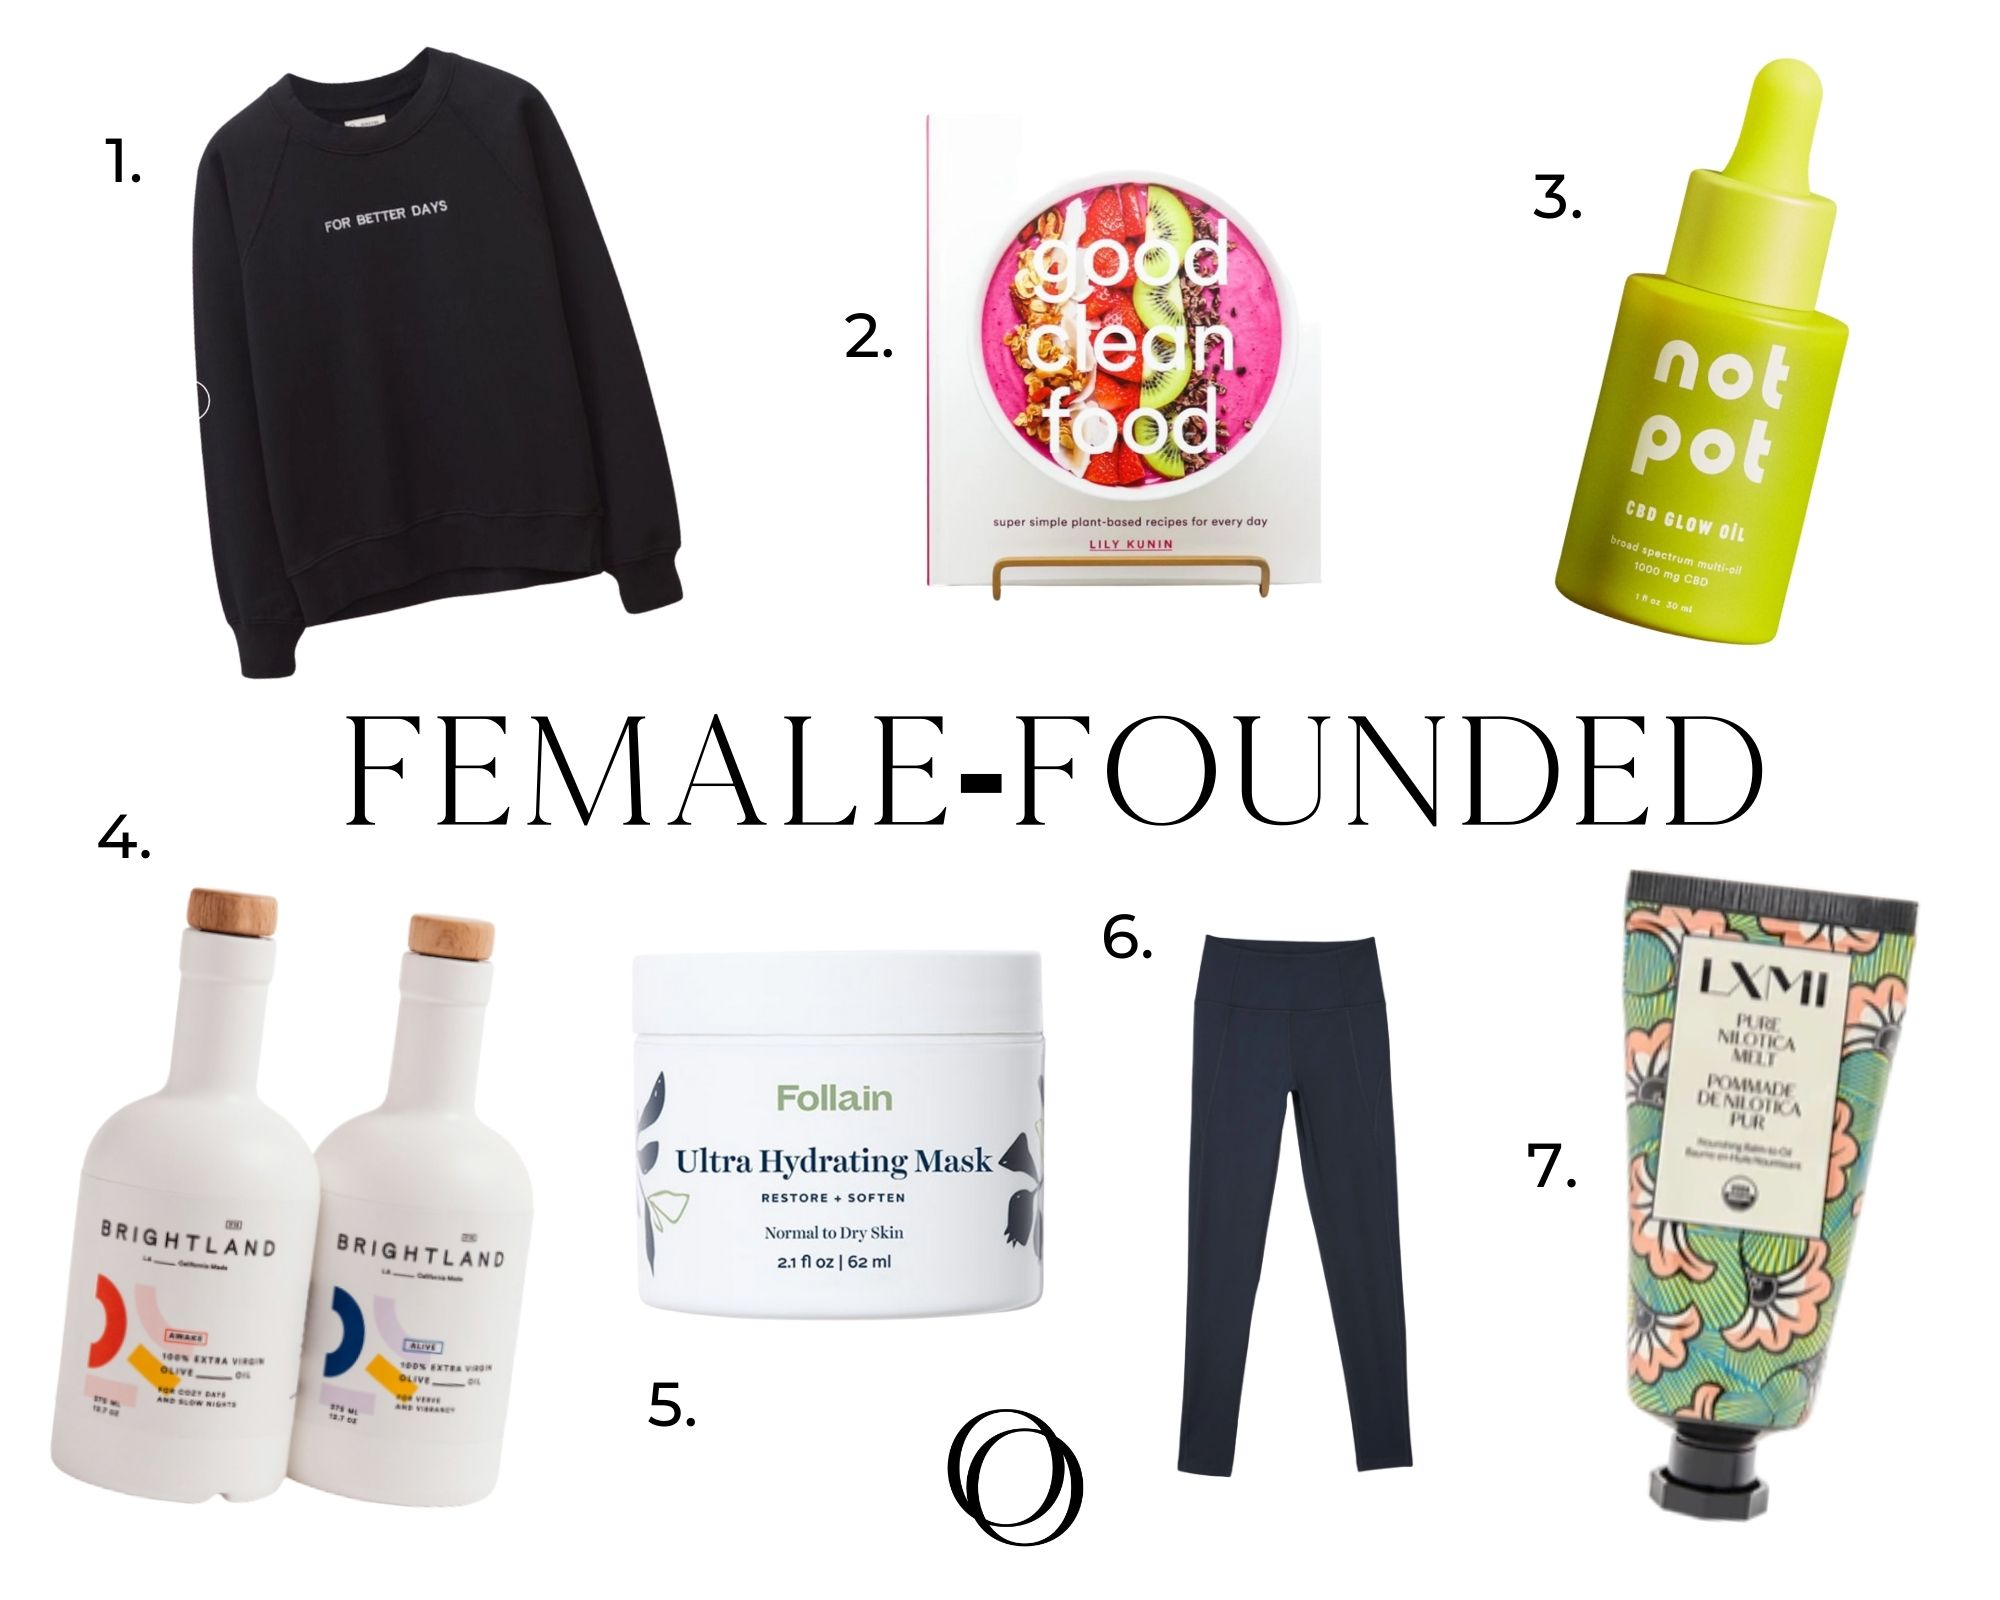 female-founded-gifts-2020-boundless